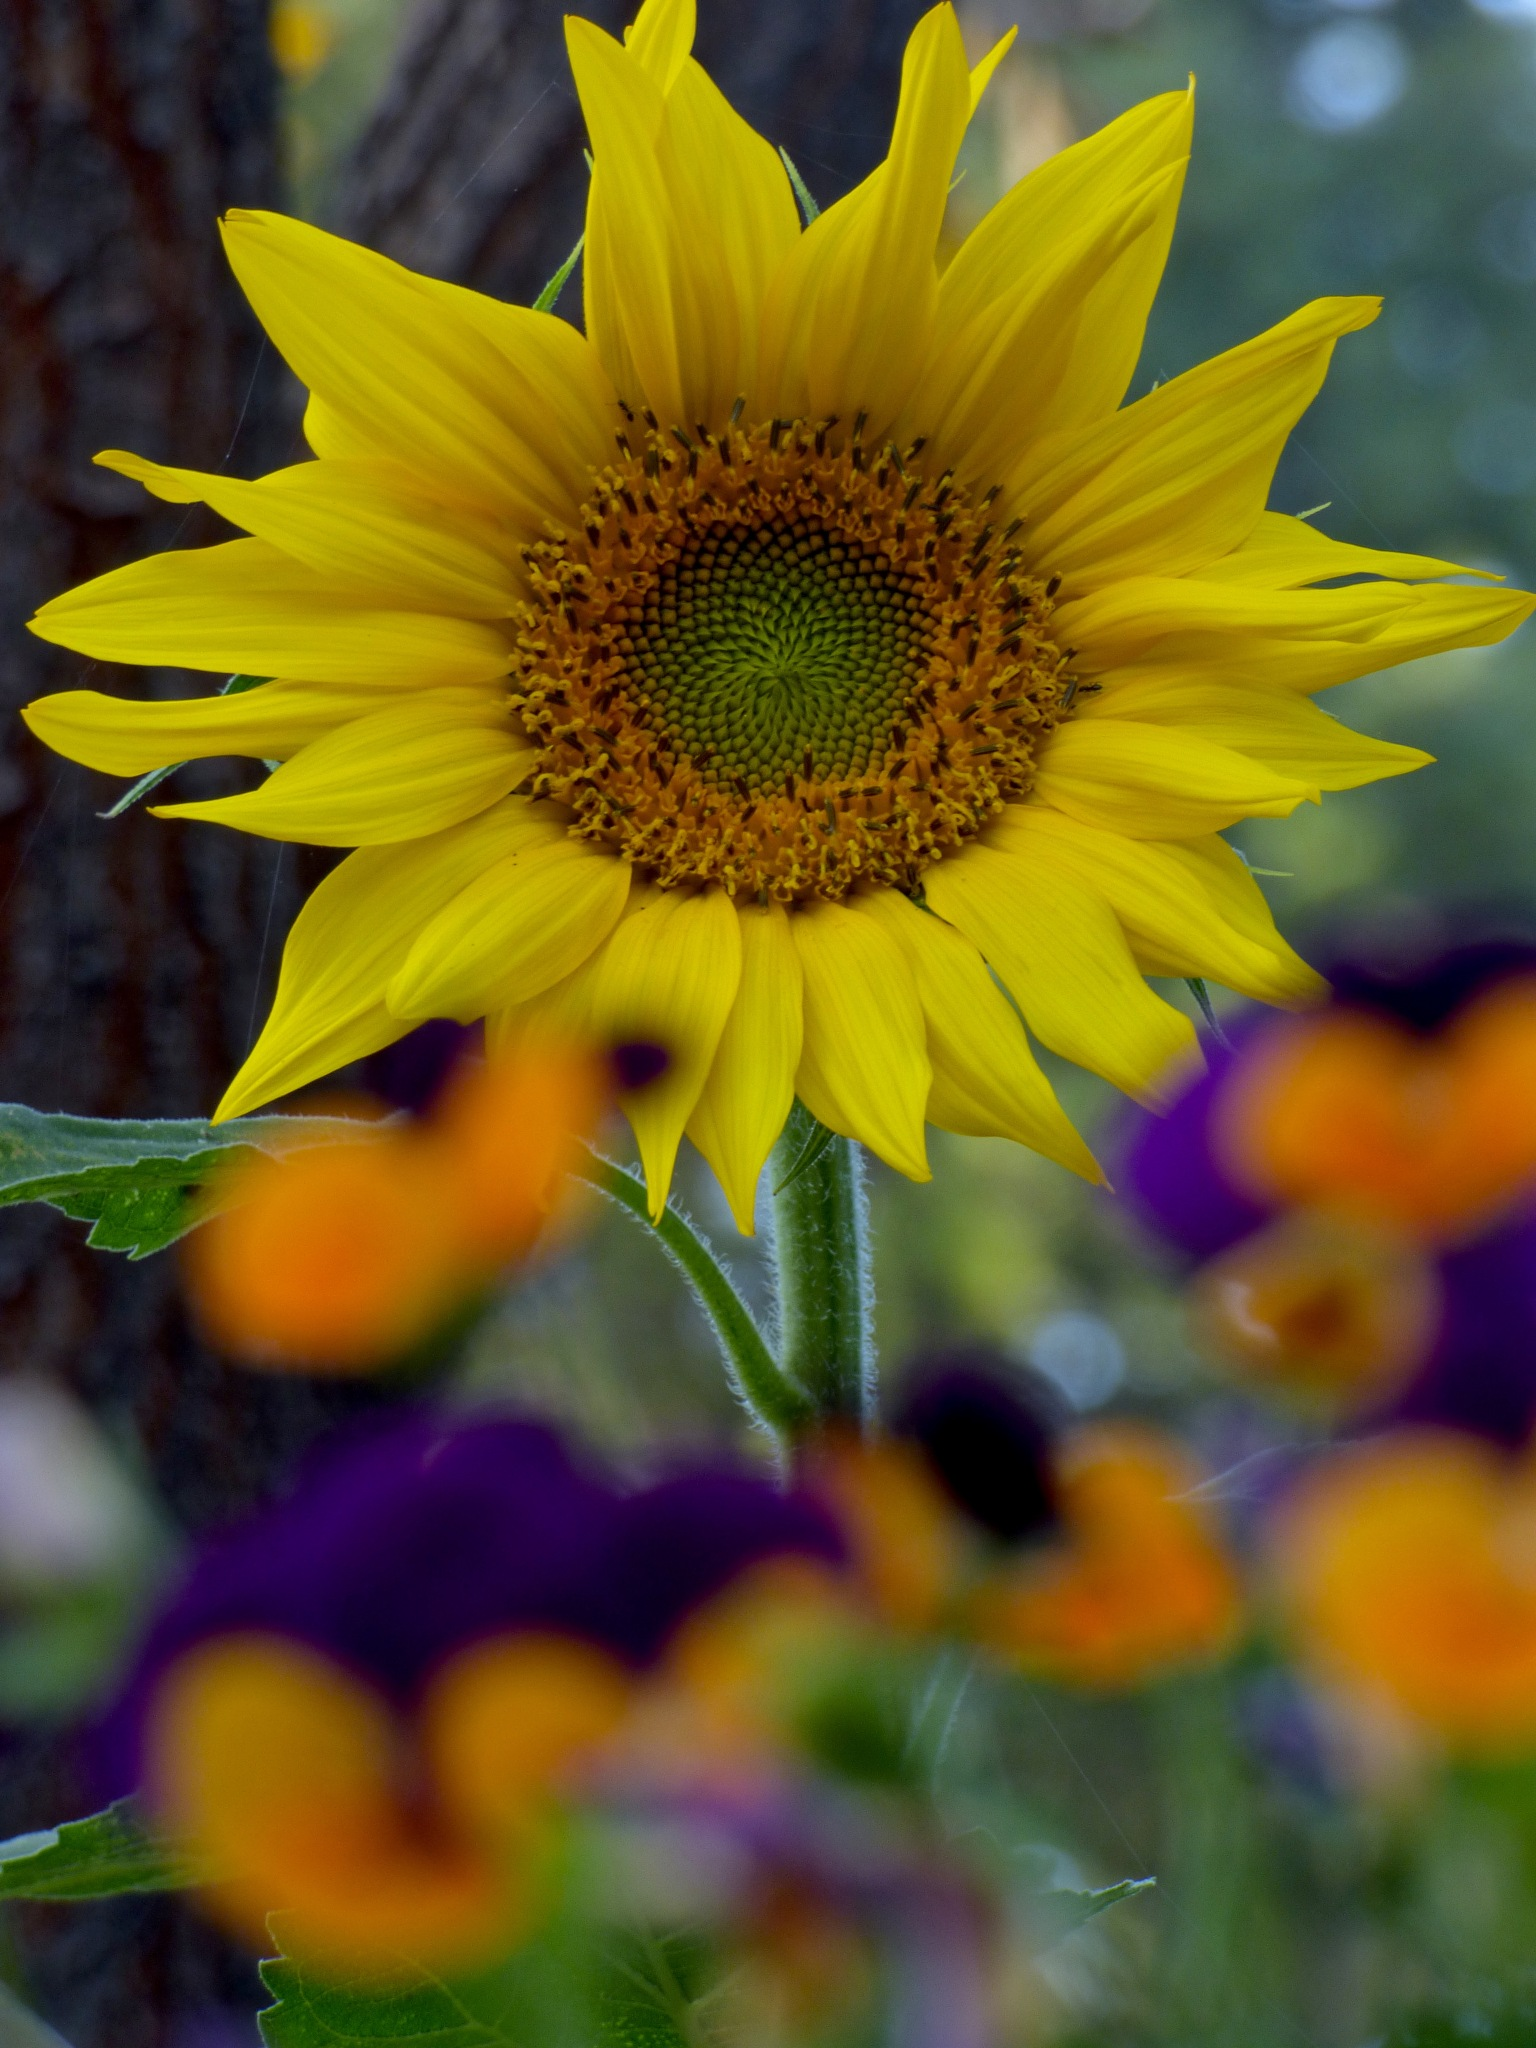 The Last Sunflower by Hunter Ten Broeck